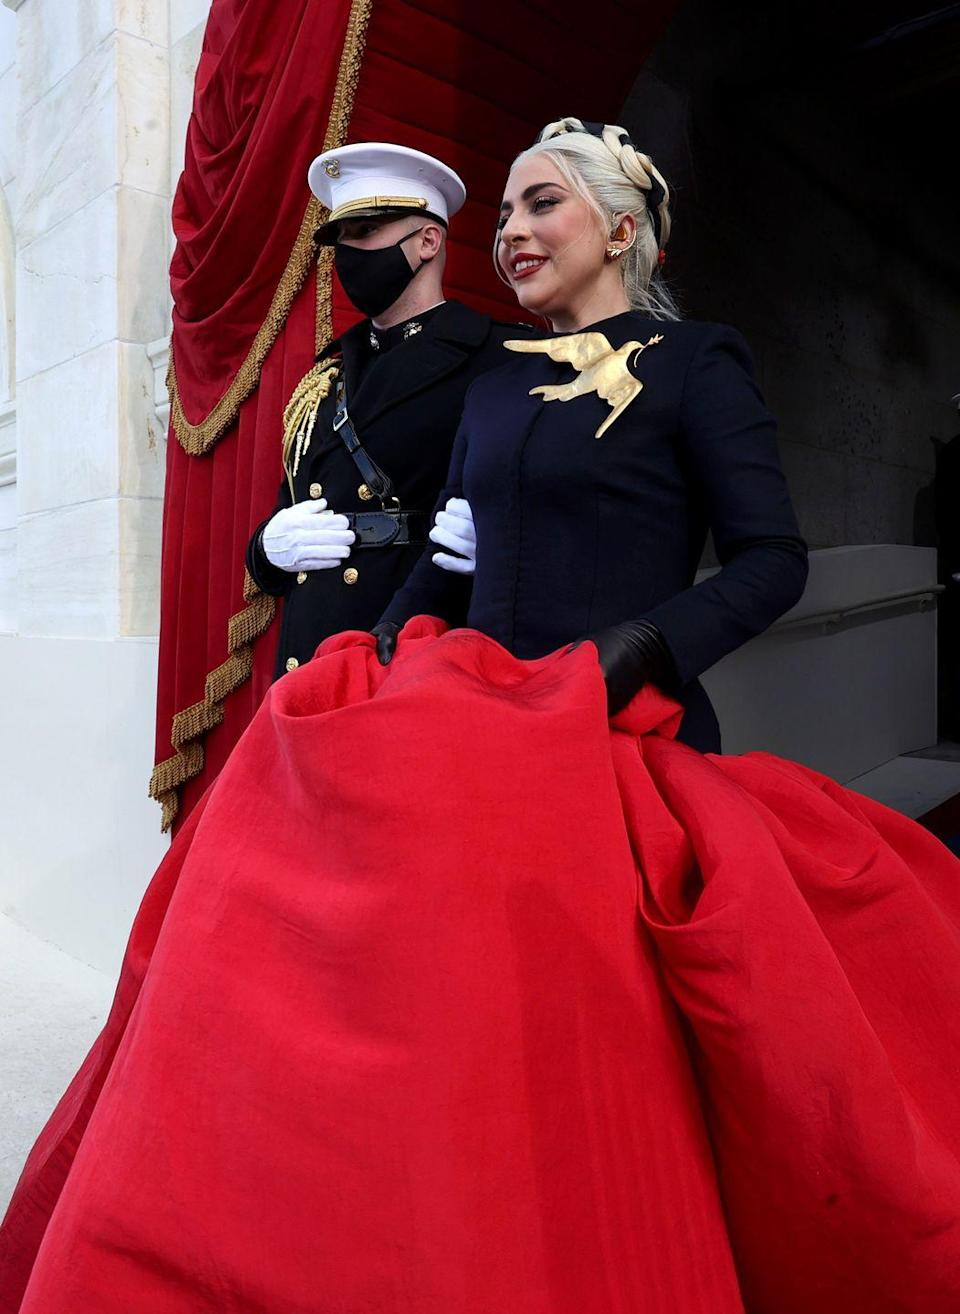 """<p>The singer, who performed the National Anthem for the ceremony, made a dramatic addition to the day's order with a custom <a href=""""https://www.schiaparelli.com/en"""" rel=""""nofollow noopener"""" target=""""_blank"""" data-ylk=""""slk:Schiaparelli"""" class=""""link rapid-noclick-resp"""">Schiaparelli</a> couture look. The navy cashmere jacket and red silk voluminous skirt left an elegant mark, but the oversized dove and olive branch brooch, more importantly, nodded to the peace, gentleness, and purity that it symbolizes across many cultures. </p>"""